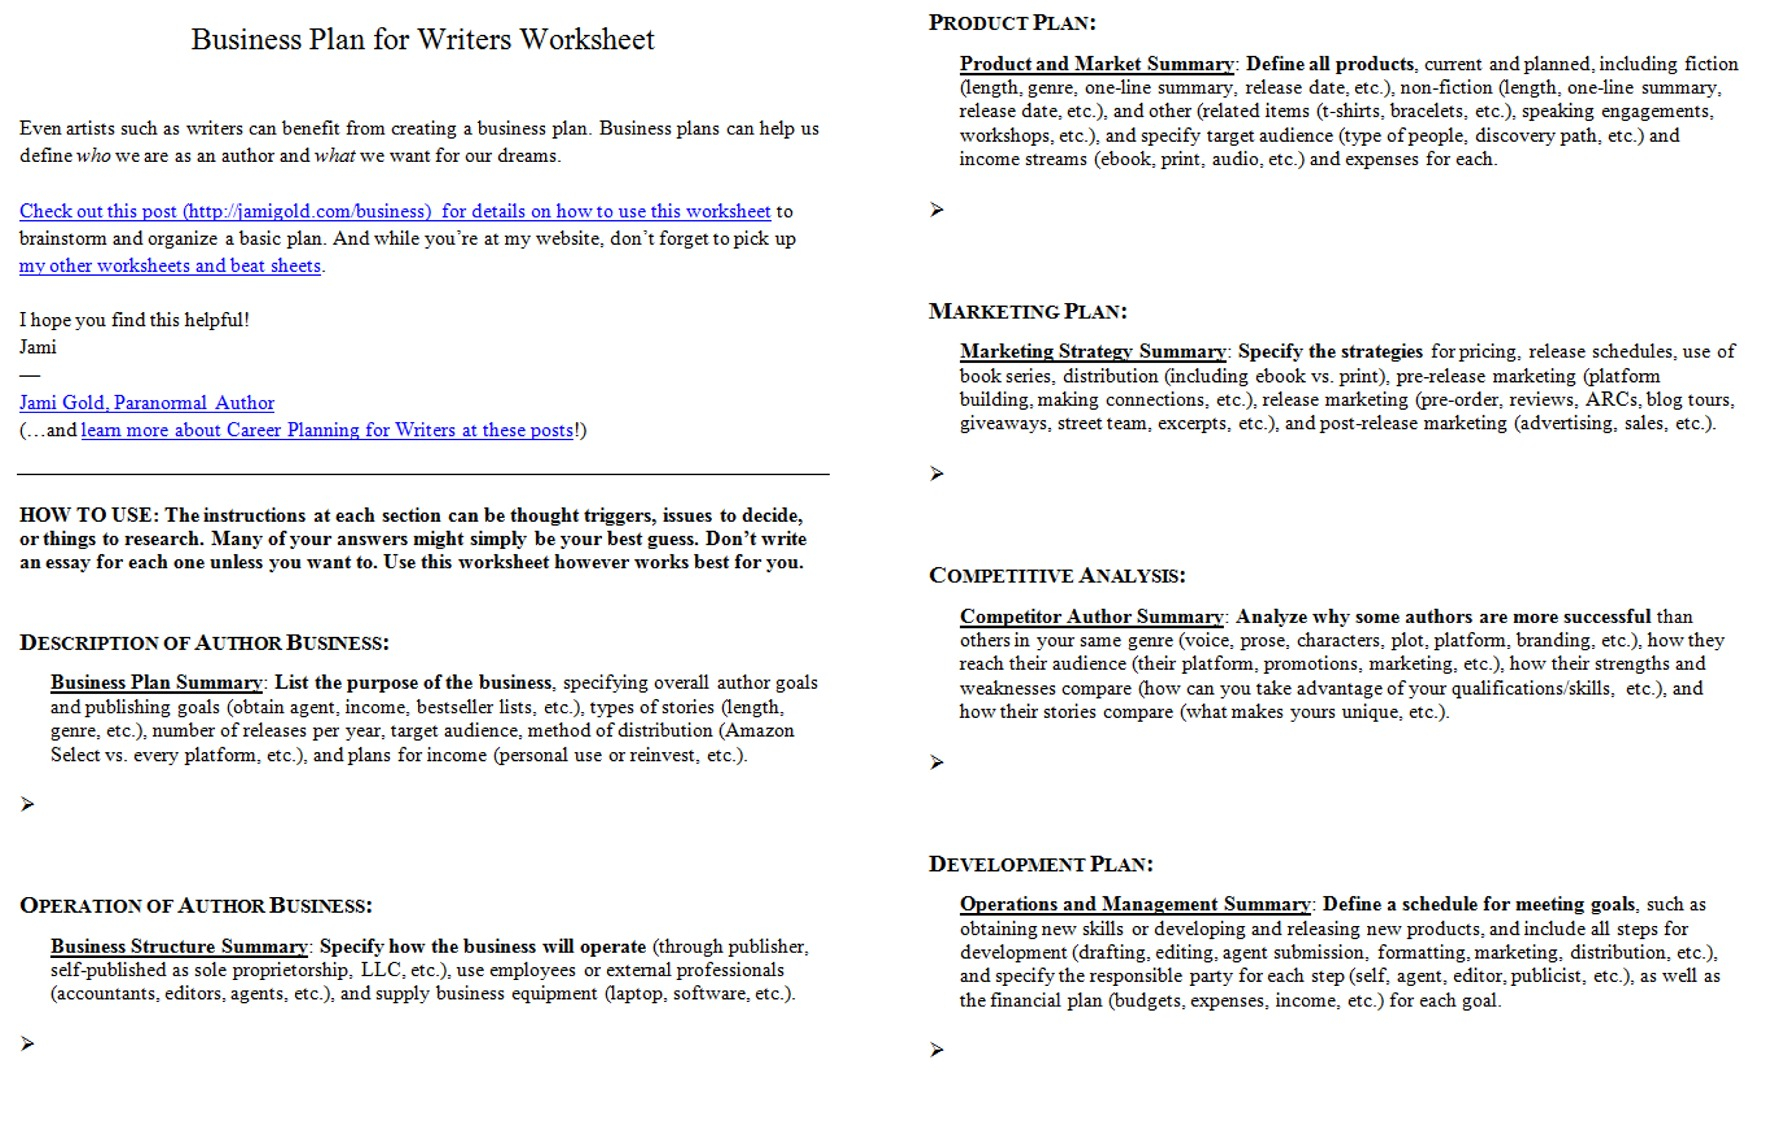 Weirdmailus  Marvellous Worksheets For Writers  Jami Gold Paranormal Author With Hot Screen Shot Of Both Pages Of The Business Plan For Writers Worksheet With Beauteous Worksheet For Kids Pdf Also Punjabi Worksheets For Kids In Addition Story Writing Ks Worksheets And Simple Present Tense Worksheets For Grade  As Well As Free Printable Counting Worksheets For Preschool Additionally Algebra Multiplication And Division Worksheets From Jamigoldcom With Weirdmailus  Hot Worksheets For Writers  Jami Gold Paranormal Author With Beauteous Screen Shot Of Both Pages Of The Business Plan For Writers Worksheet And Marvellous Worksheet For Kids Pdf Also Punjabi Worksheets For Kids In Addition Story Writing Ks Worksheets From Jamigoldcom